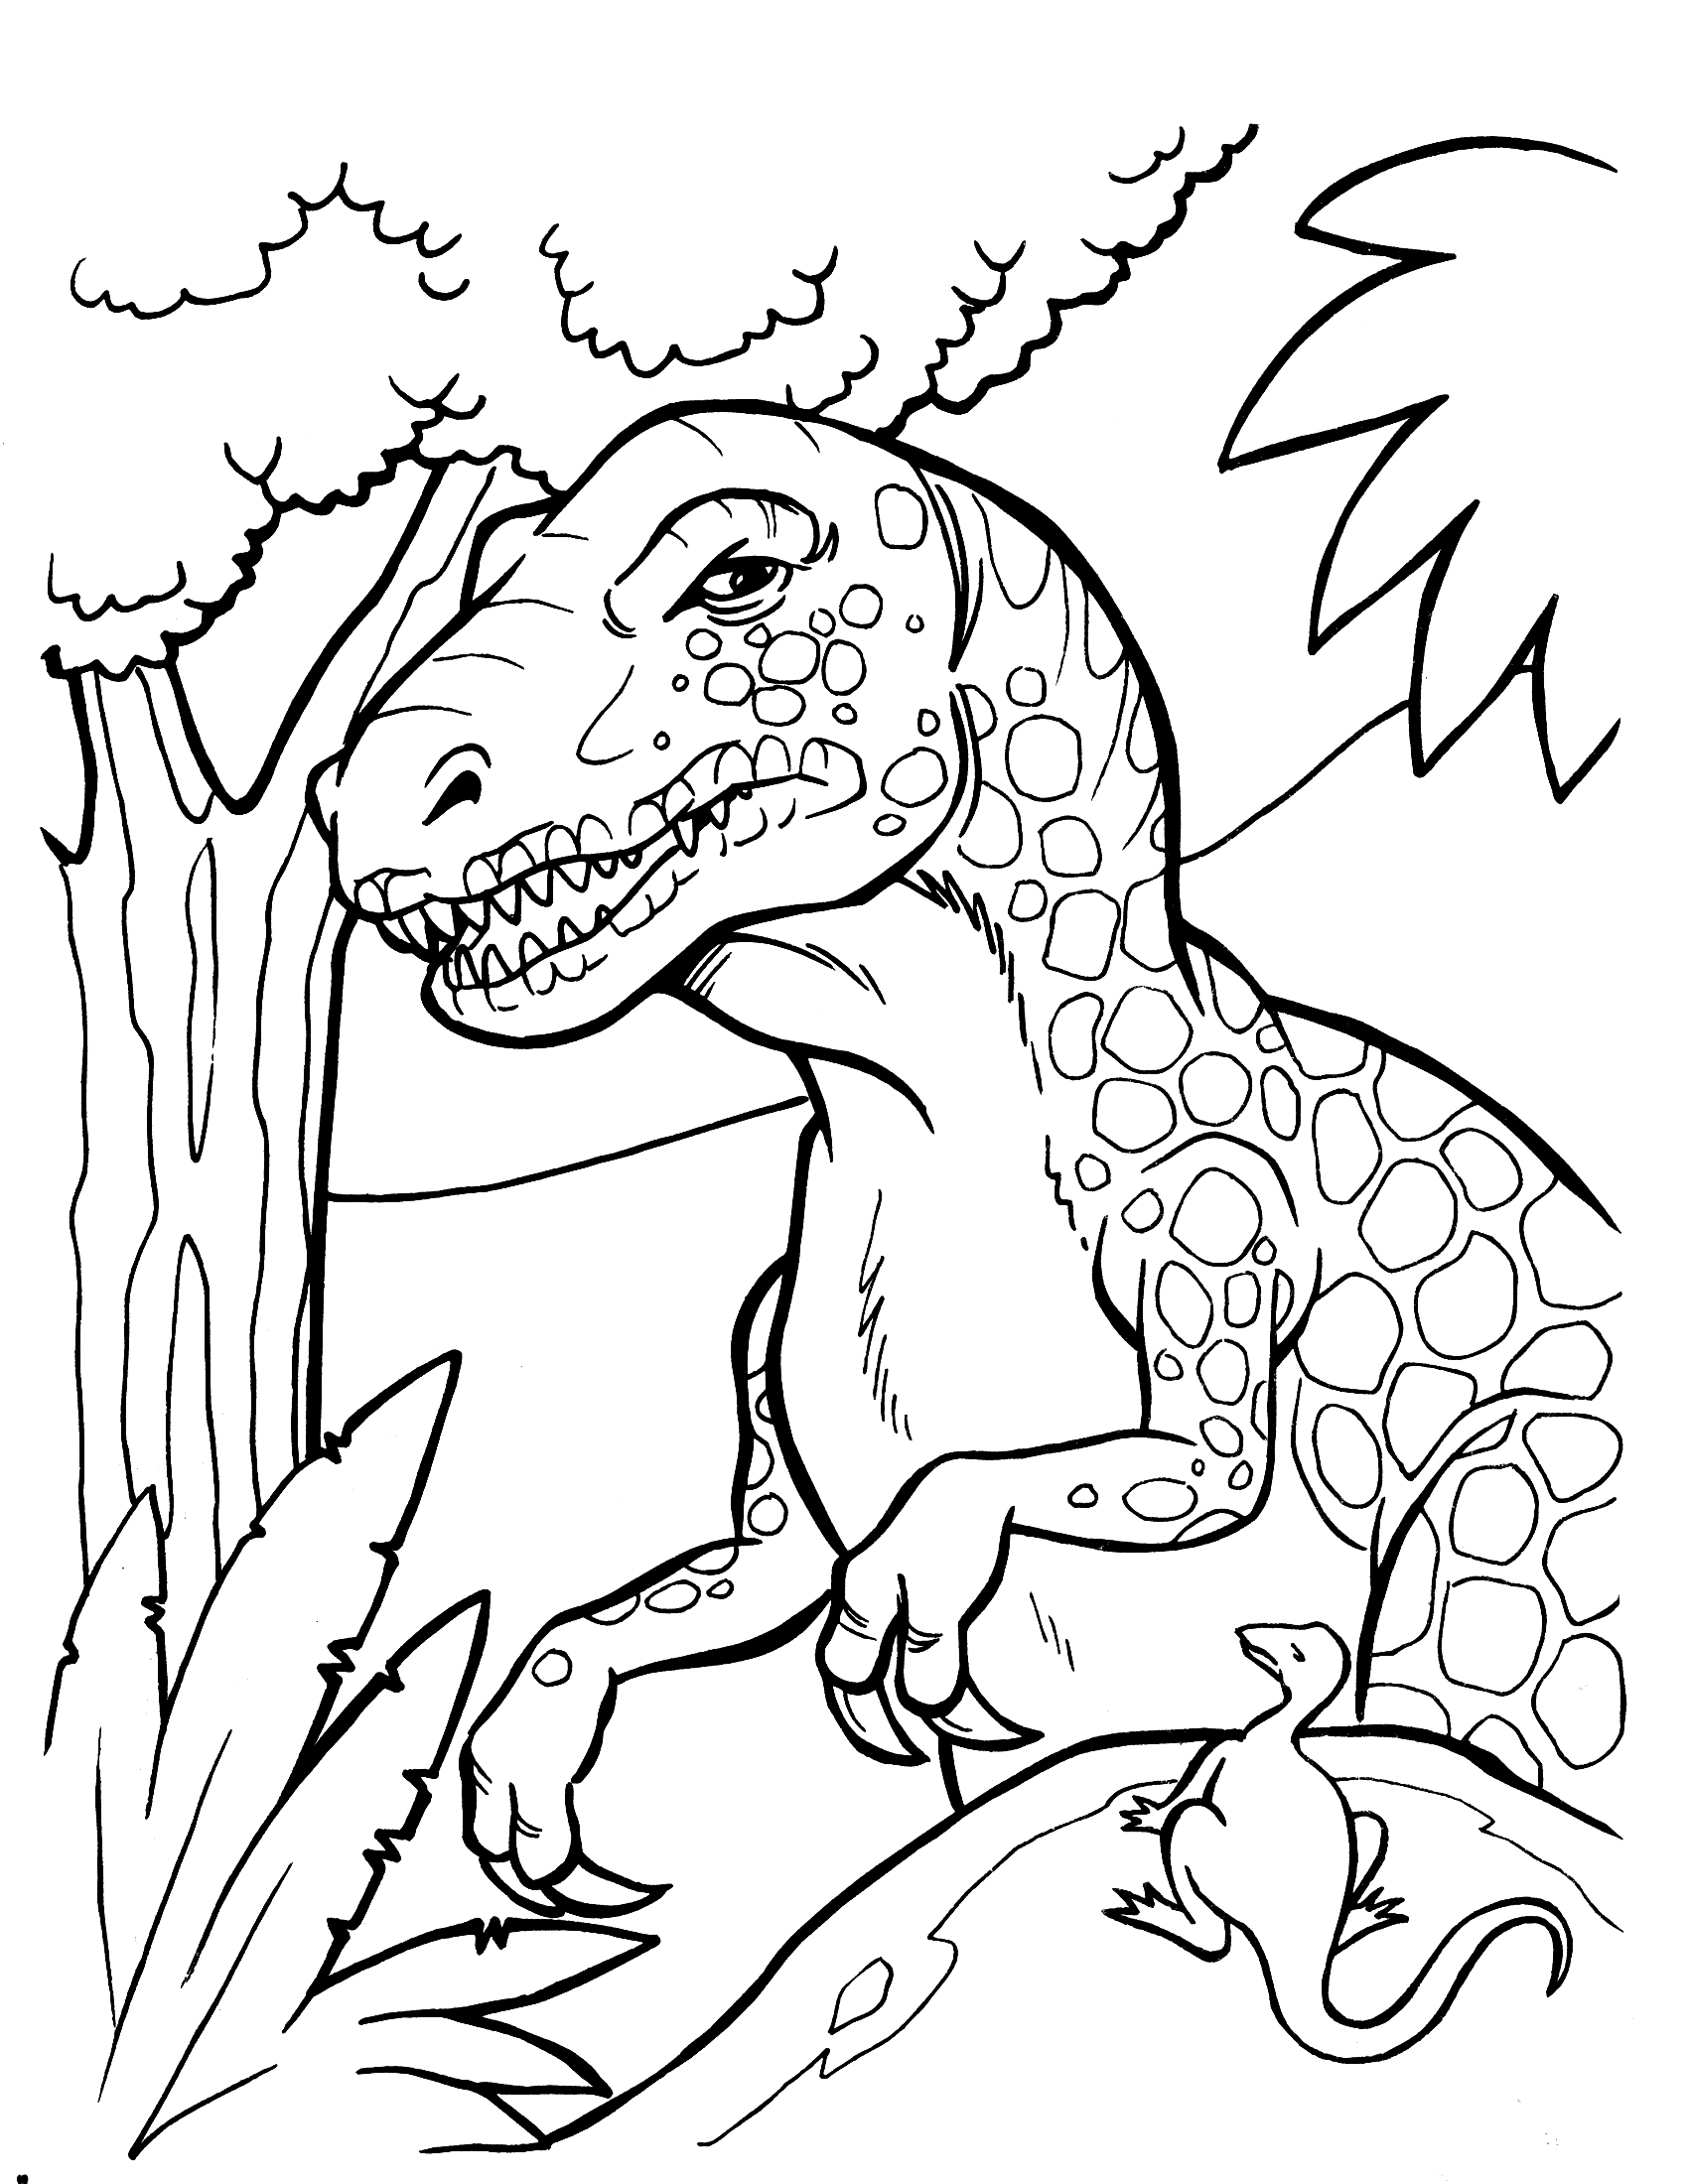 dinosaur coloring pages printable free t rex dinosaur coloring pages at getcoloringscom free dinosaur free coloring pages printable